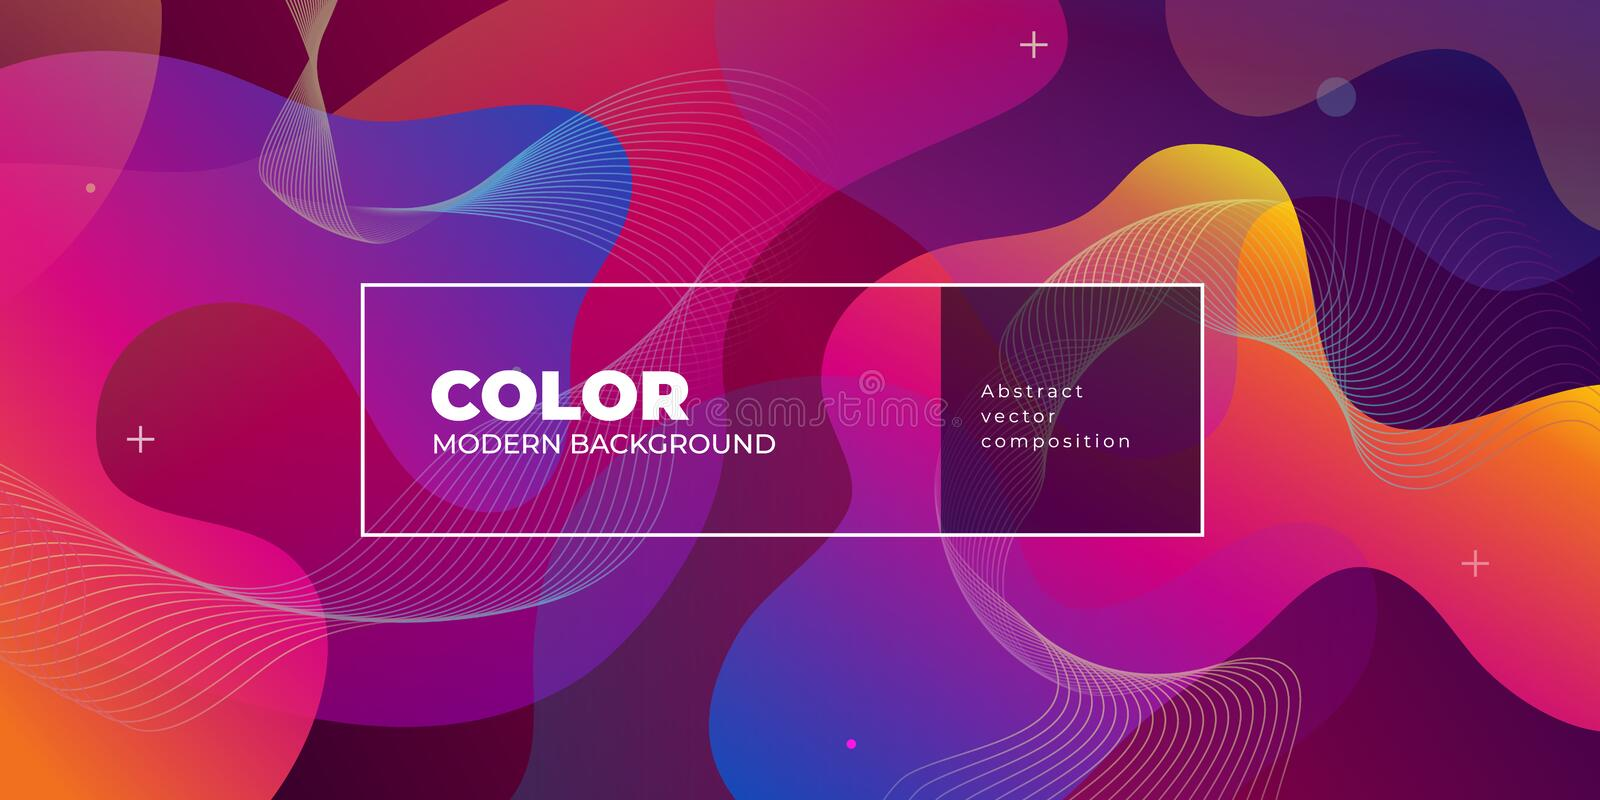 Color gradient background design. Abstract geometric background with liquid shapes. Cool background design for posters. Eps10 vector illustration royalty free illustration